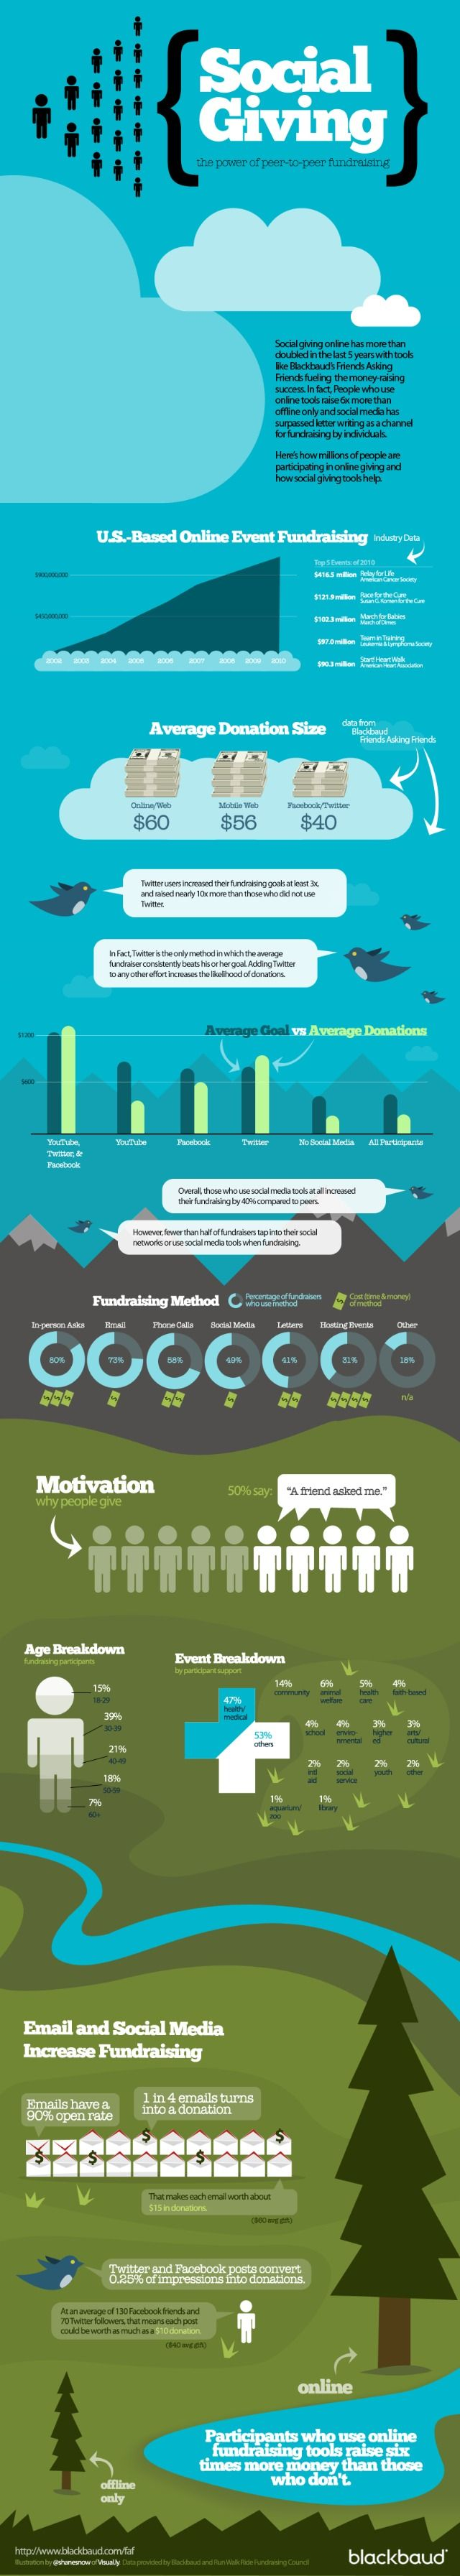 The power of social giving infographic: stats on U.S. online fundraising, average donation, fundraising method, motivation and type of cause supported. Good stuff!